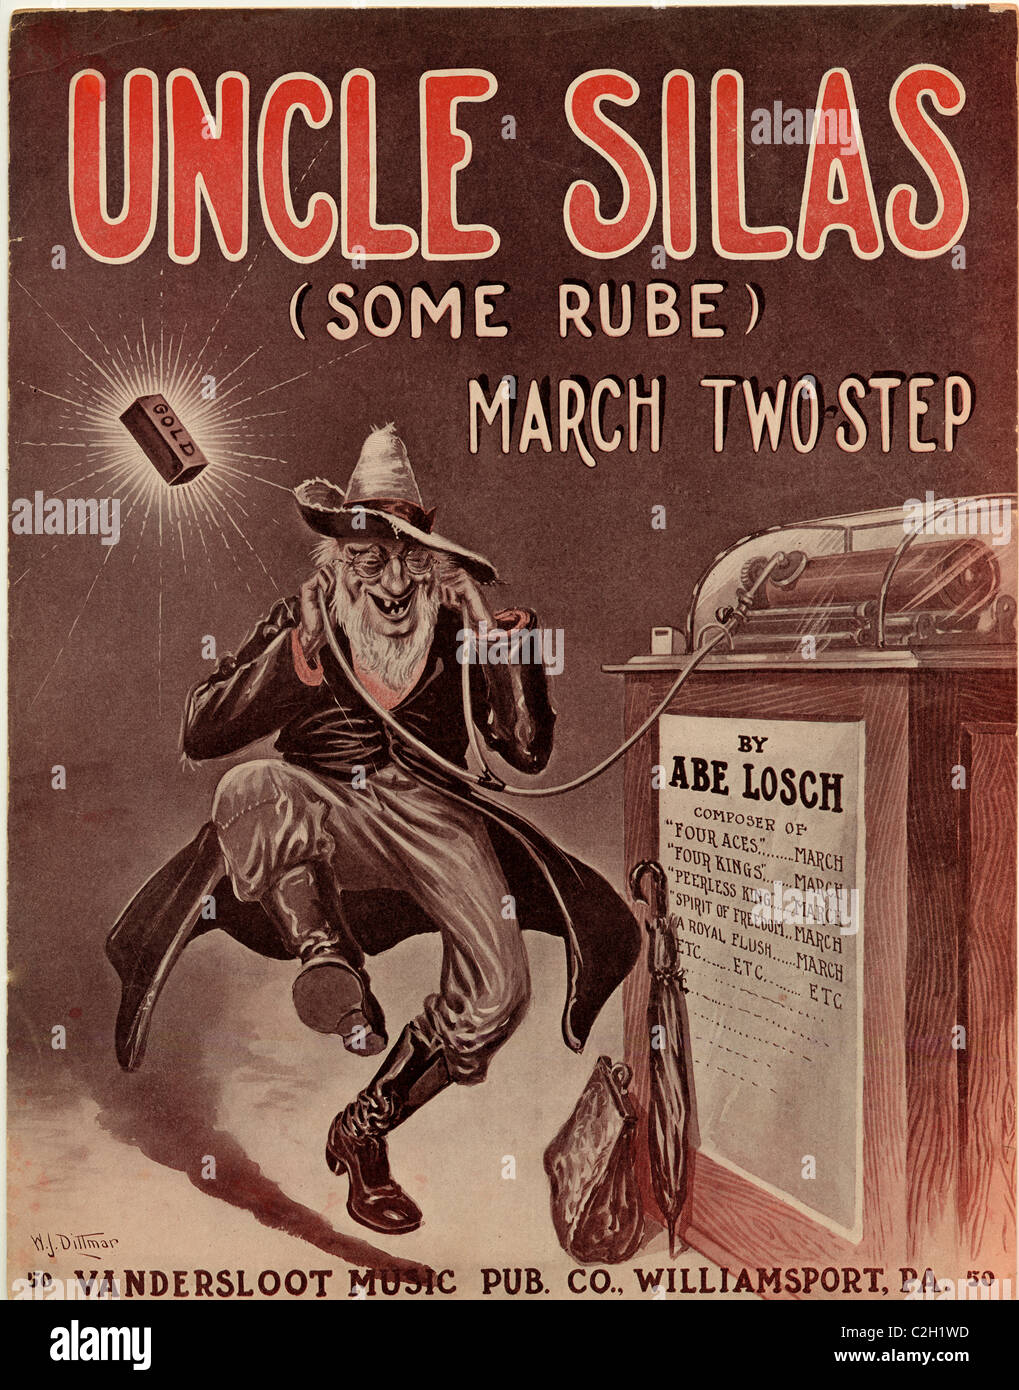 Uncle Silas, Some Rube - Stock Image